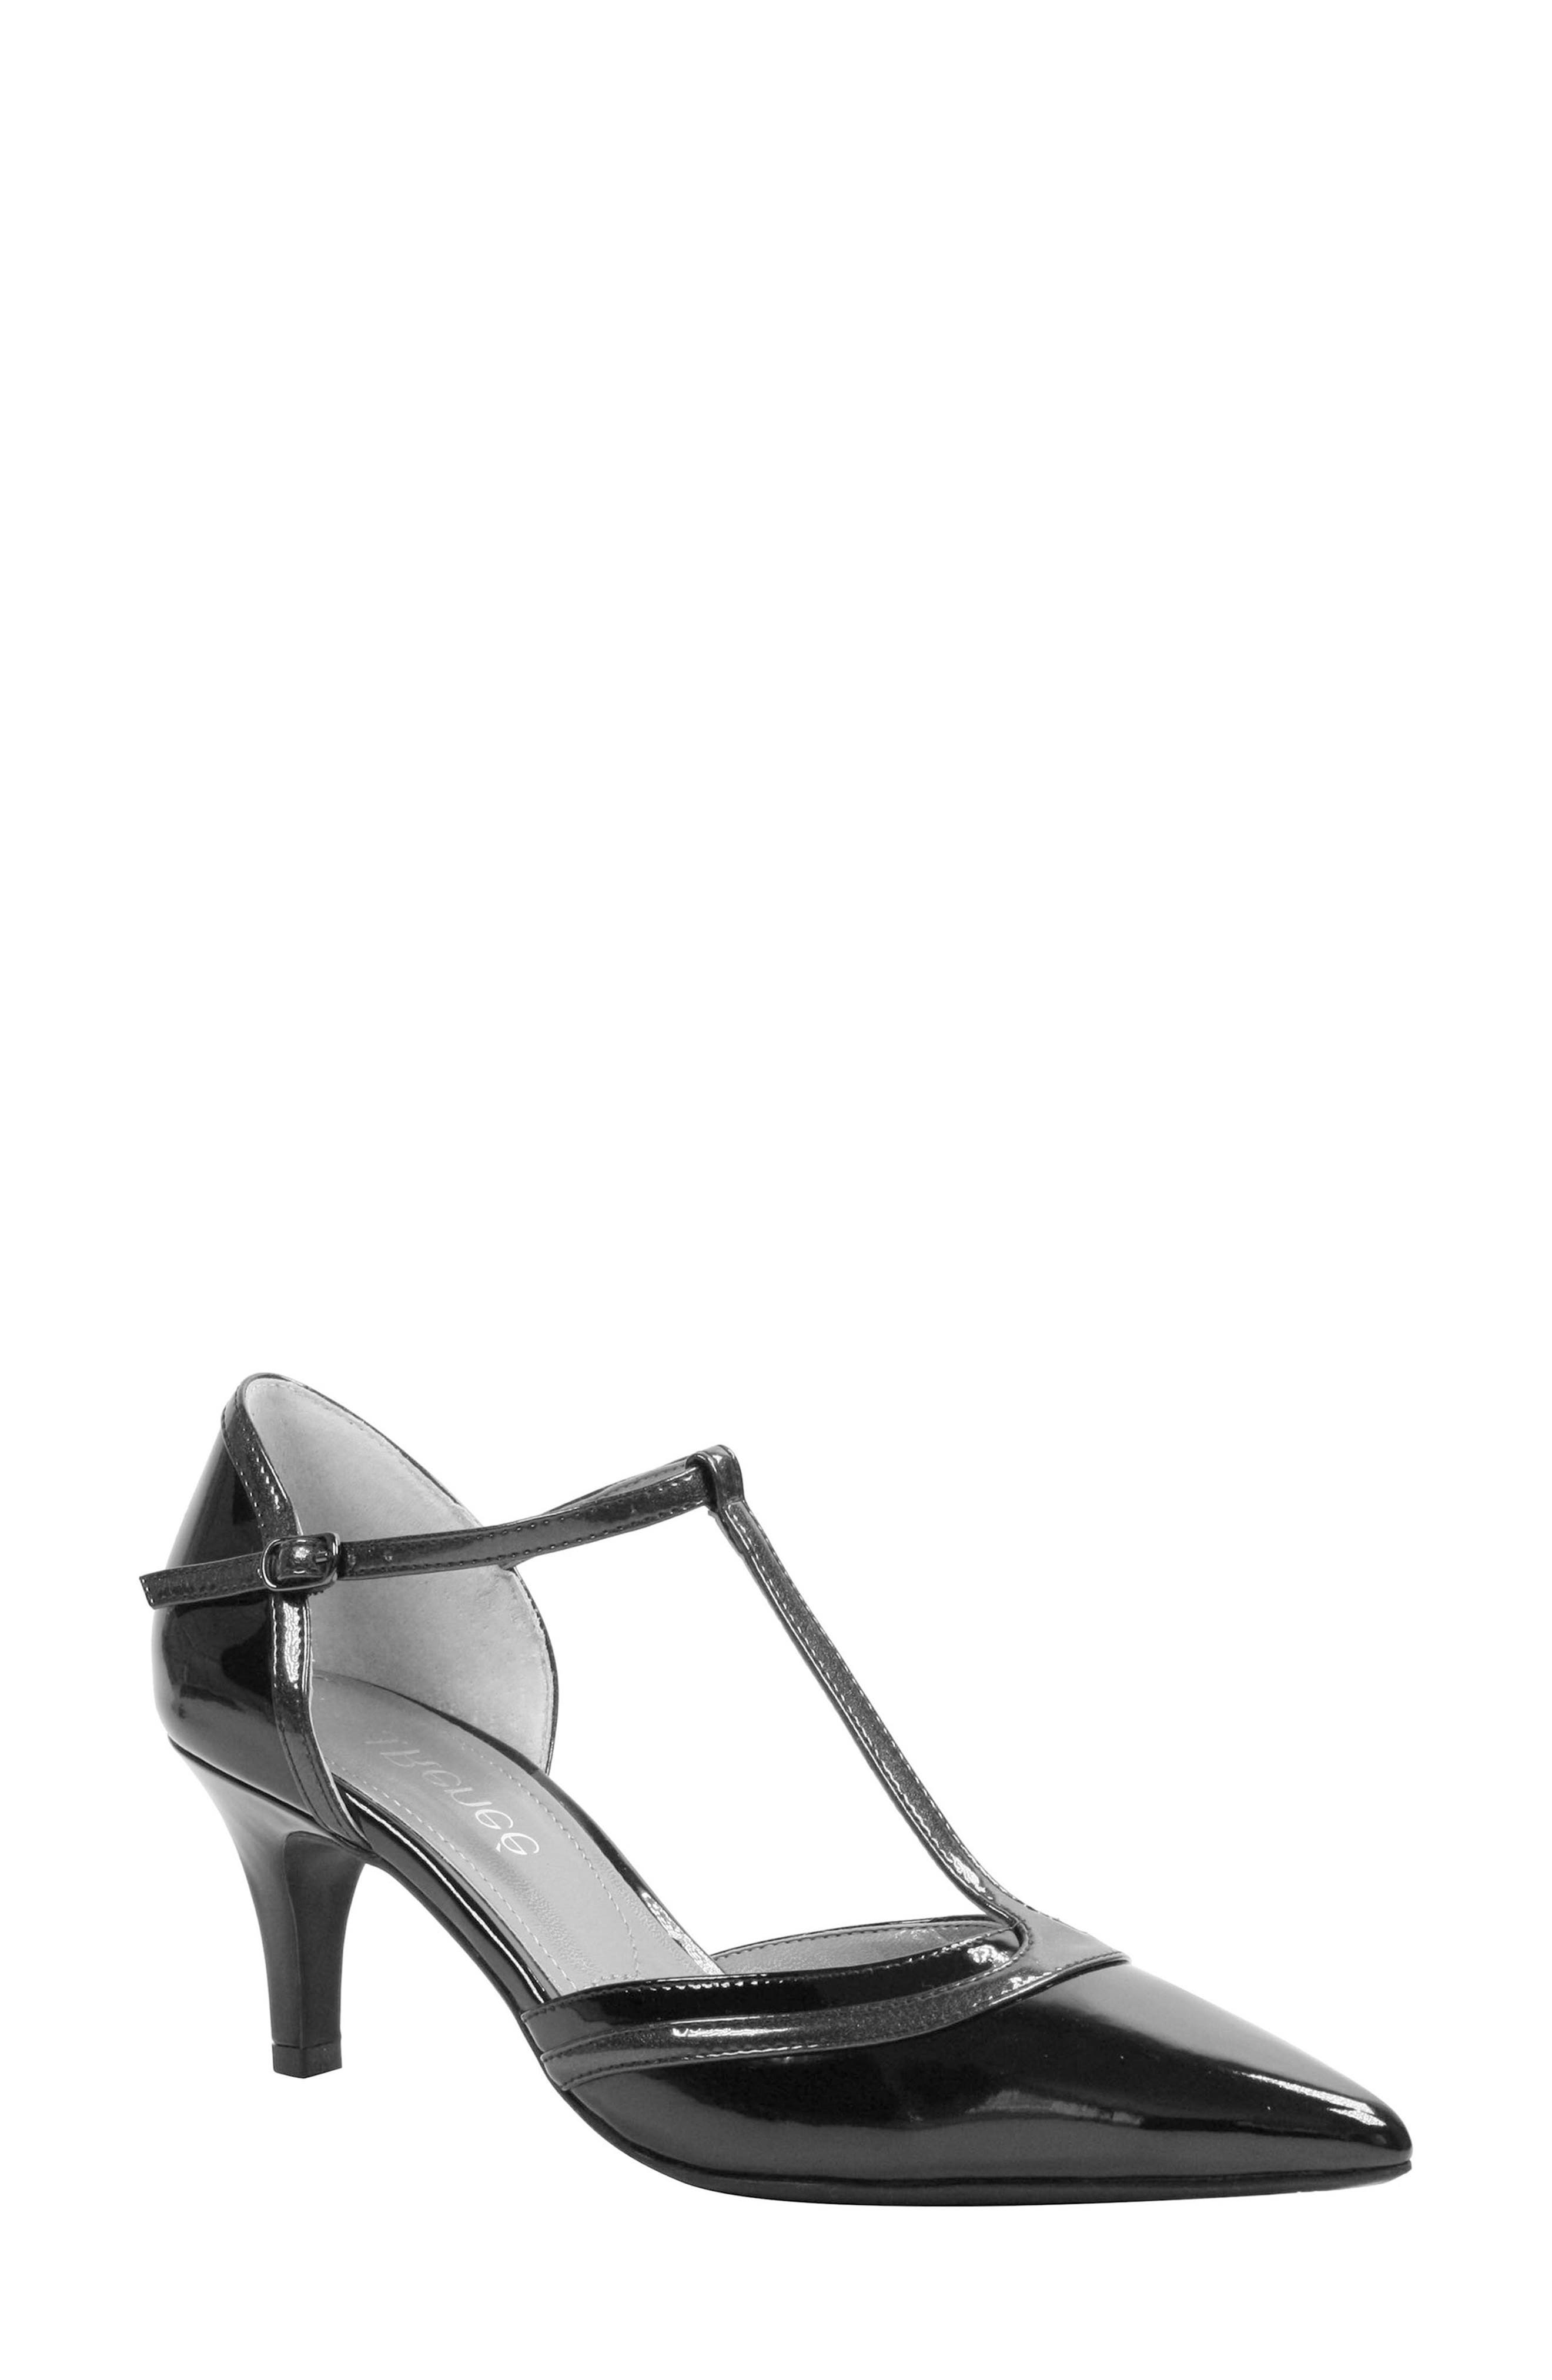 Emiliana T-Strap Pump,                         Main,                         color, 001